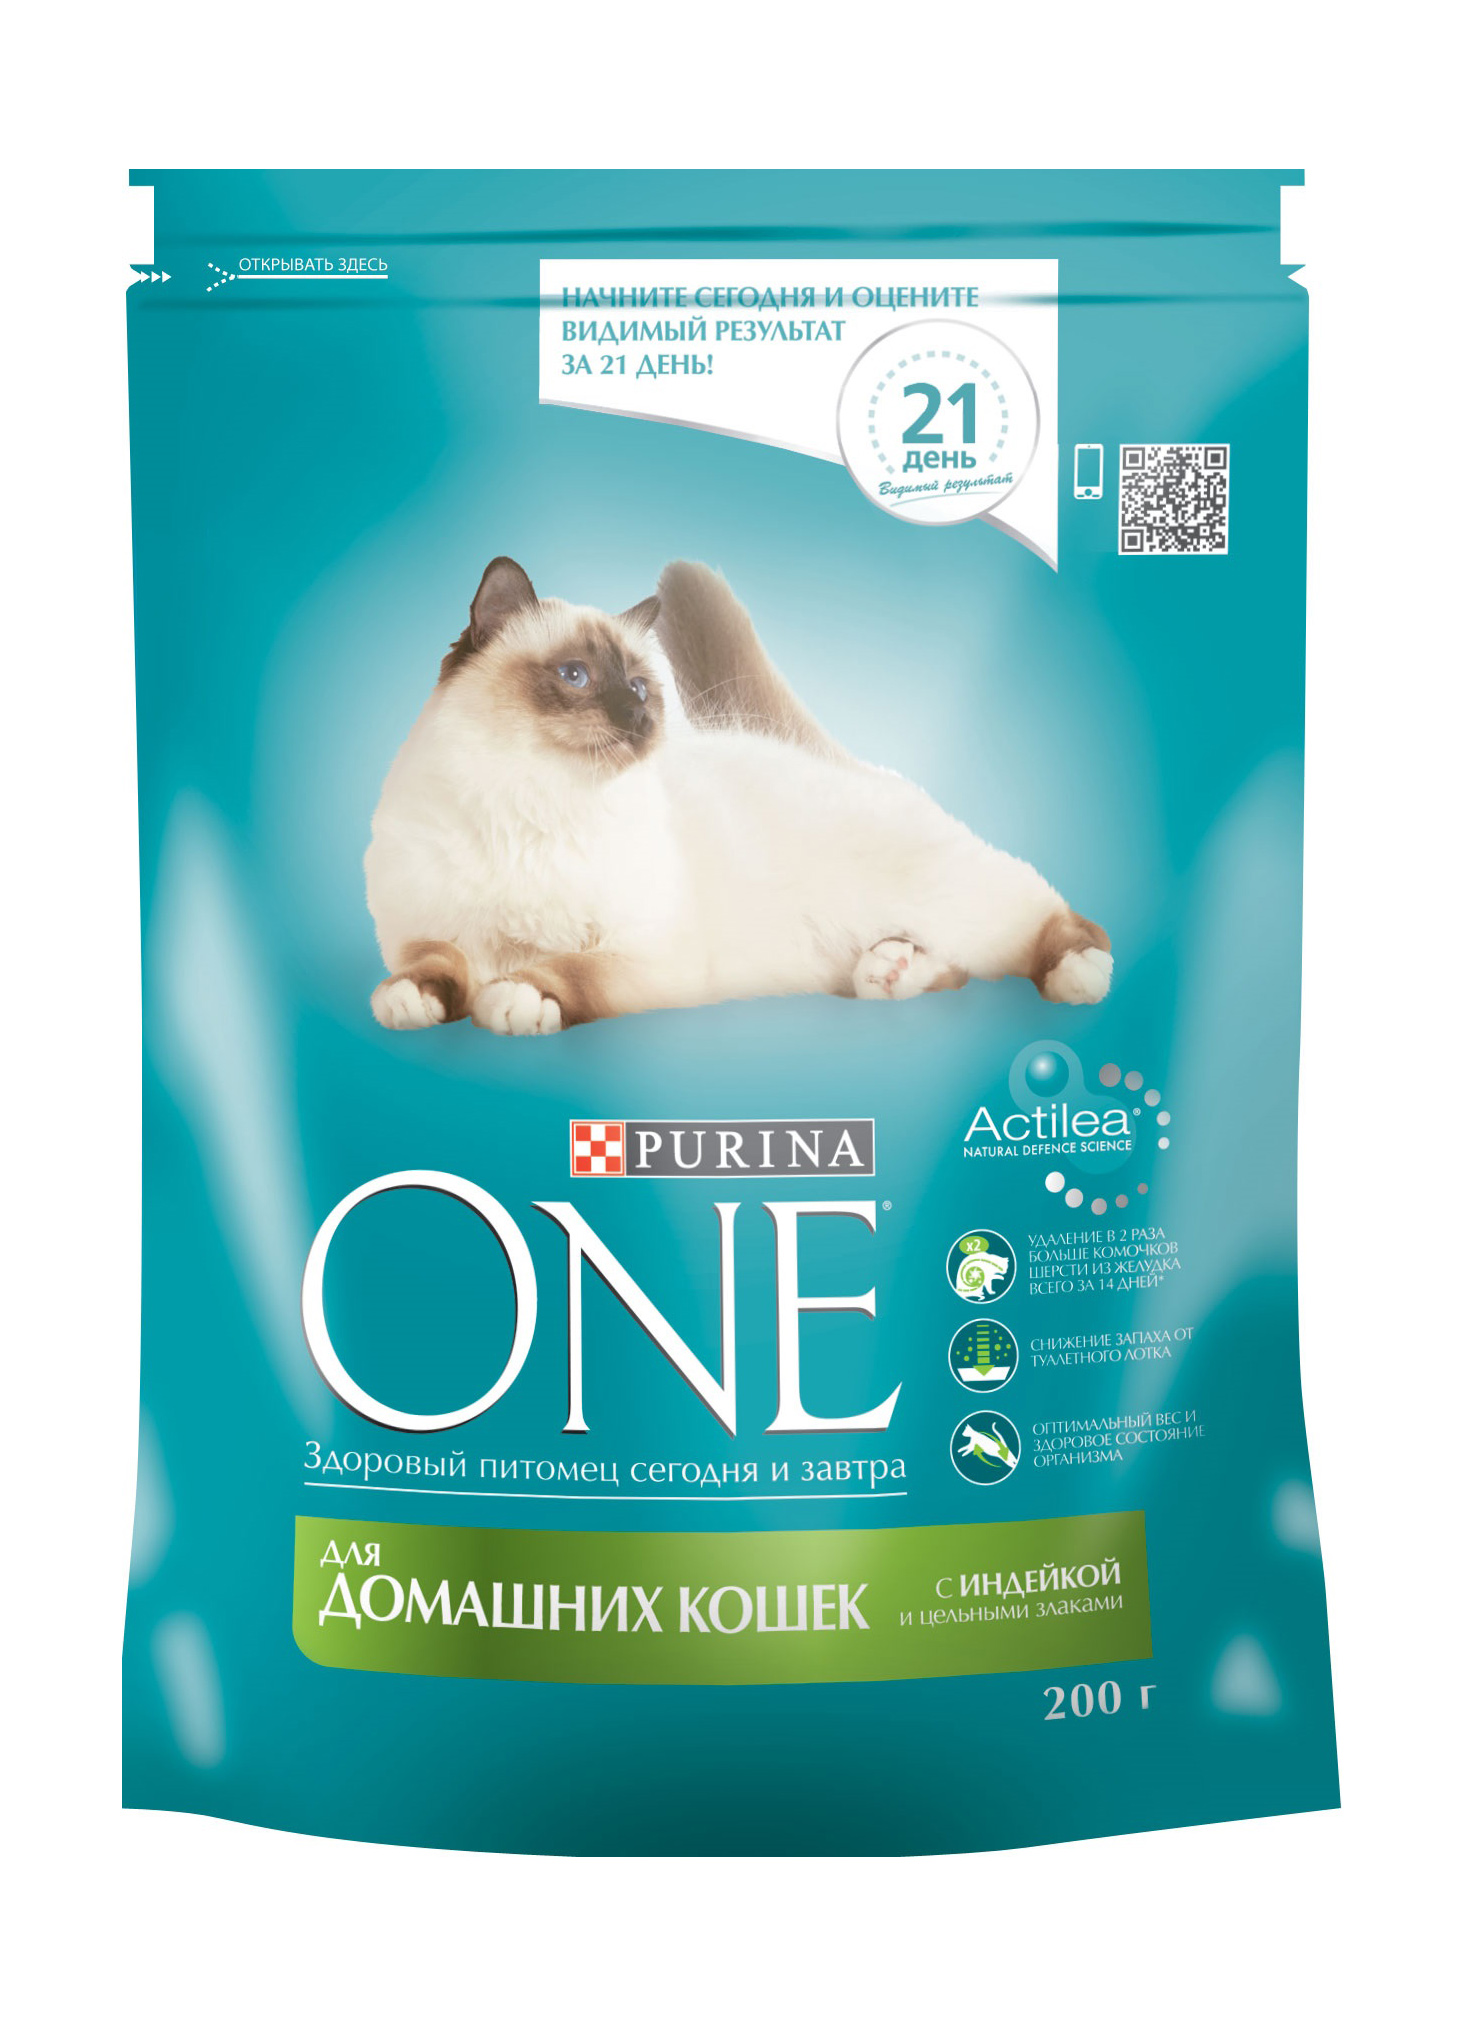 Купить Сухой корм для домашних кошек Purina One, индейка и цельные злаки, пакет, 200 г в интернет магазине товаров для животных. Интернет магазин зоотоваров в Москве, корма и другие товары для животных